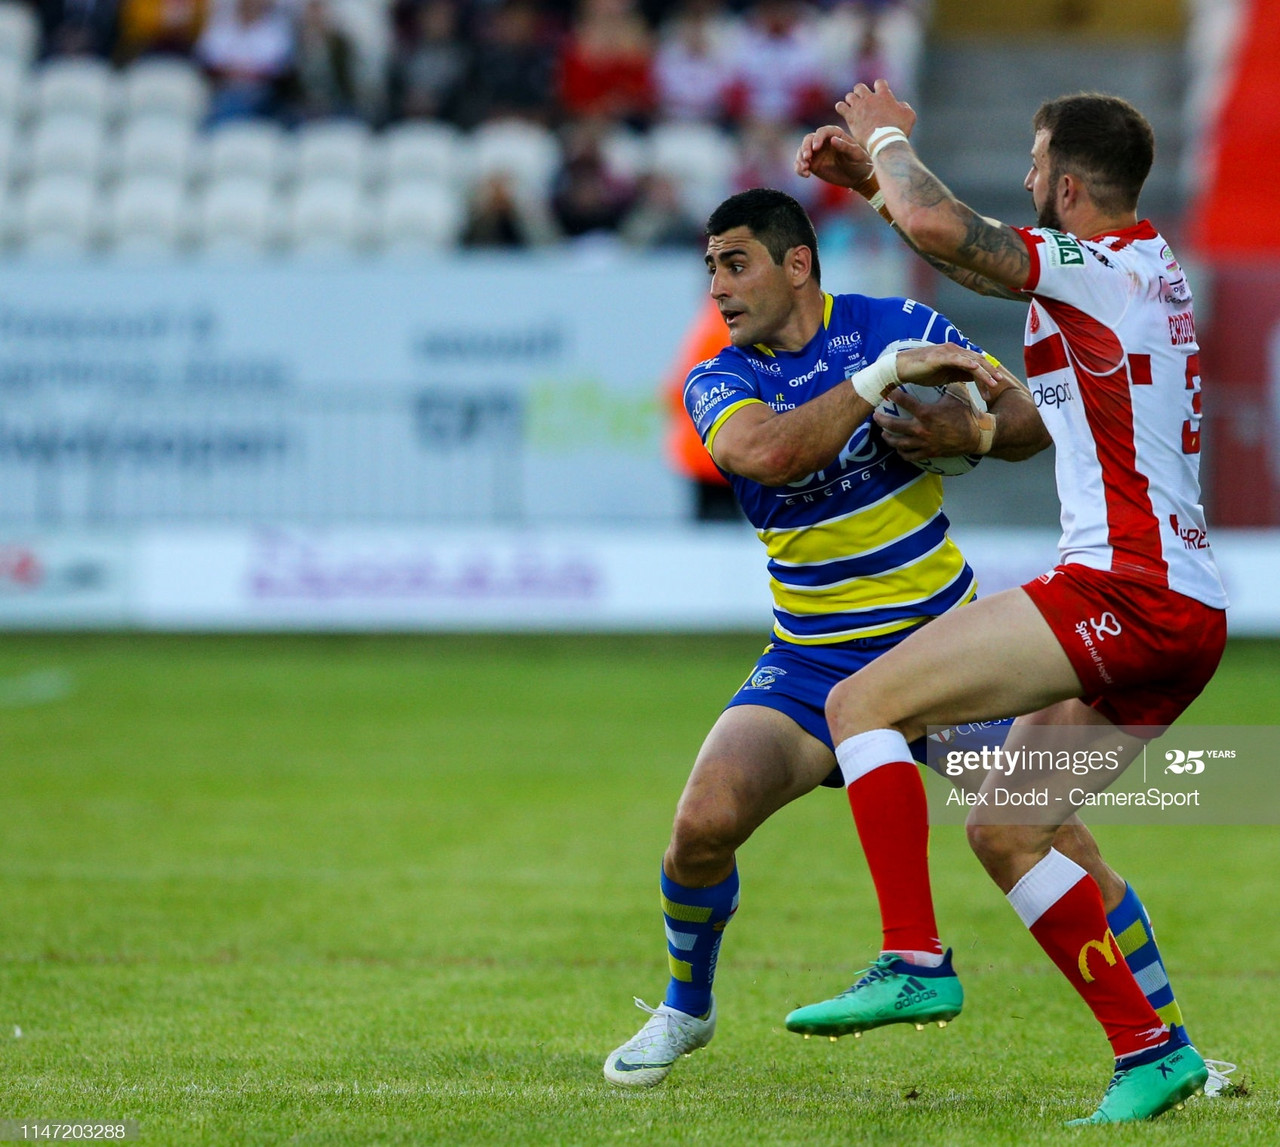 Warrington Wolves vs Hull KR preview: First test for both sides since March